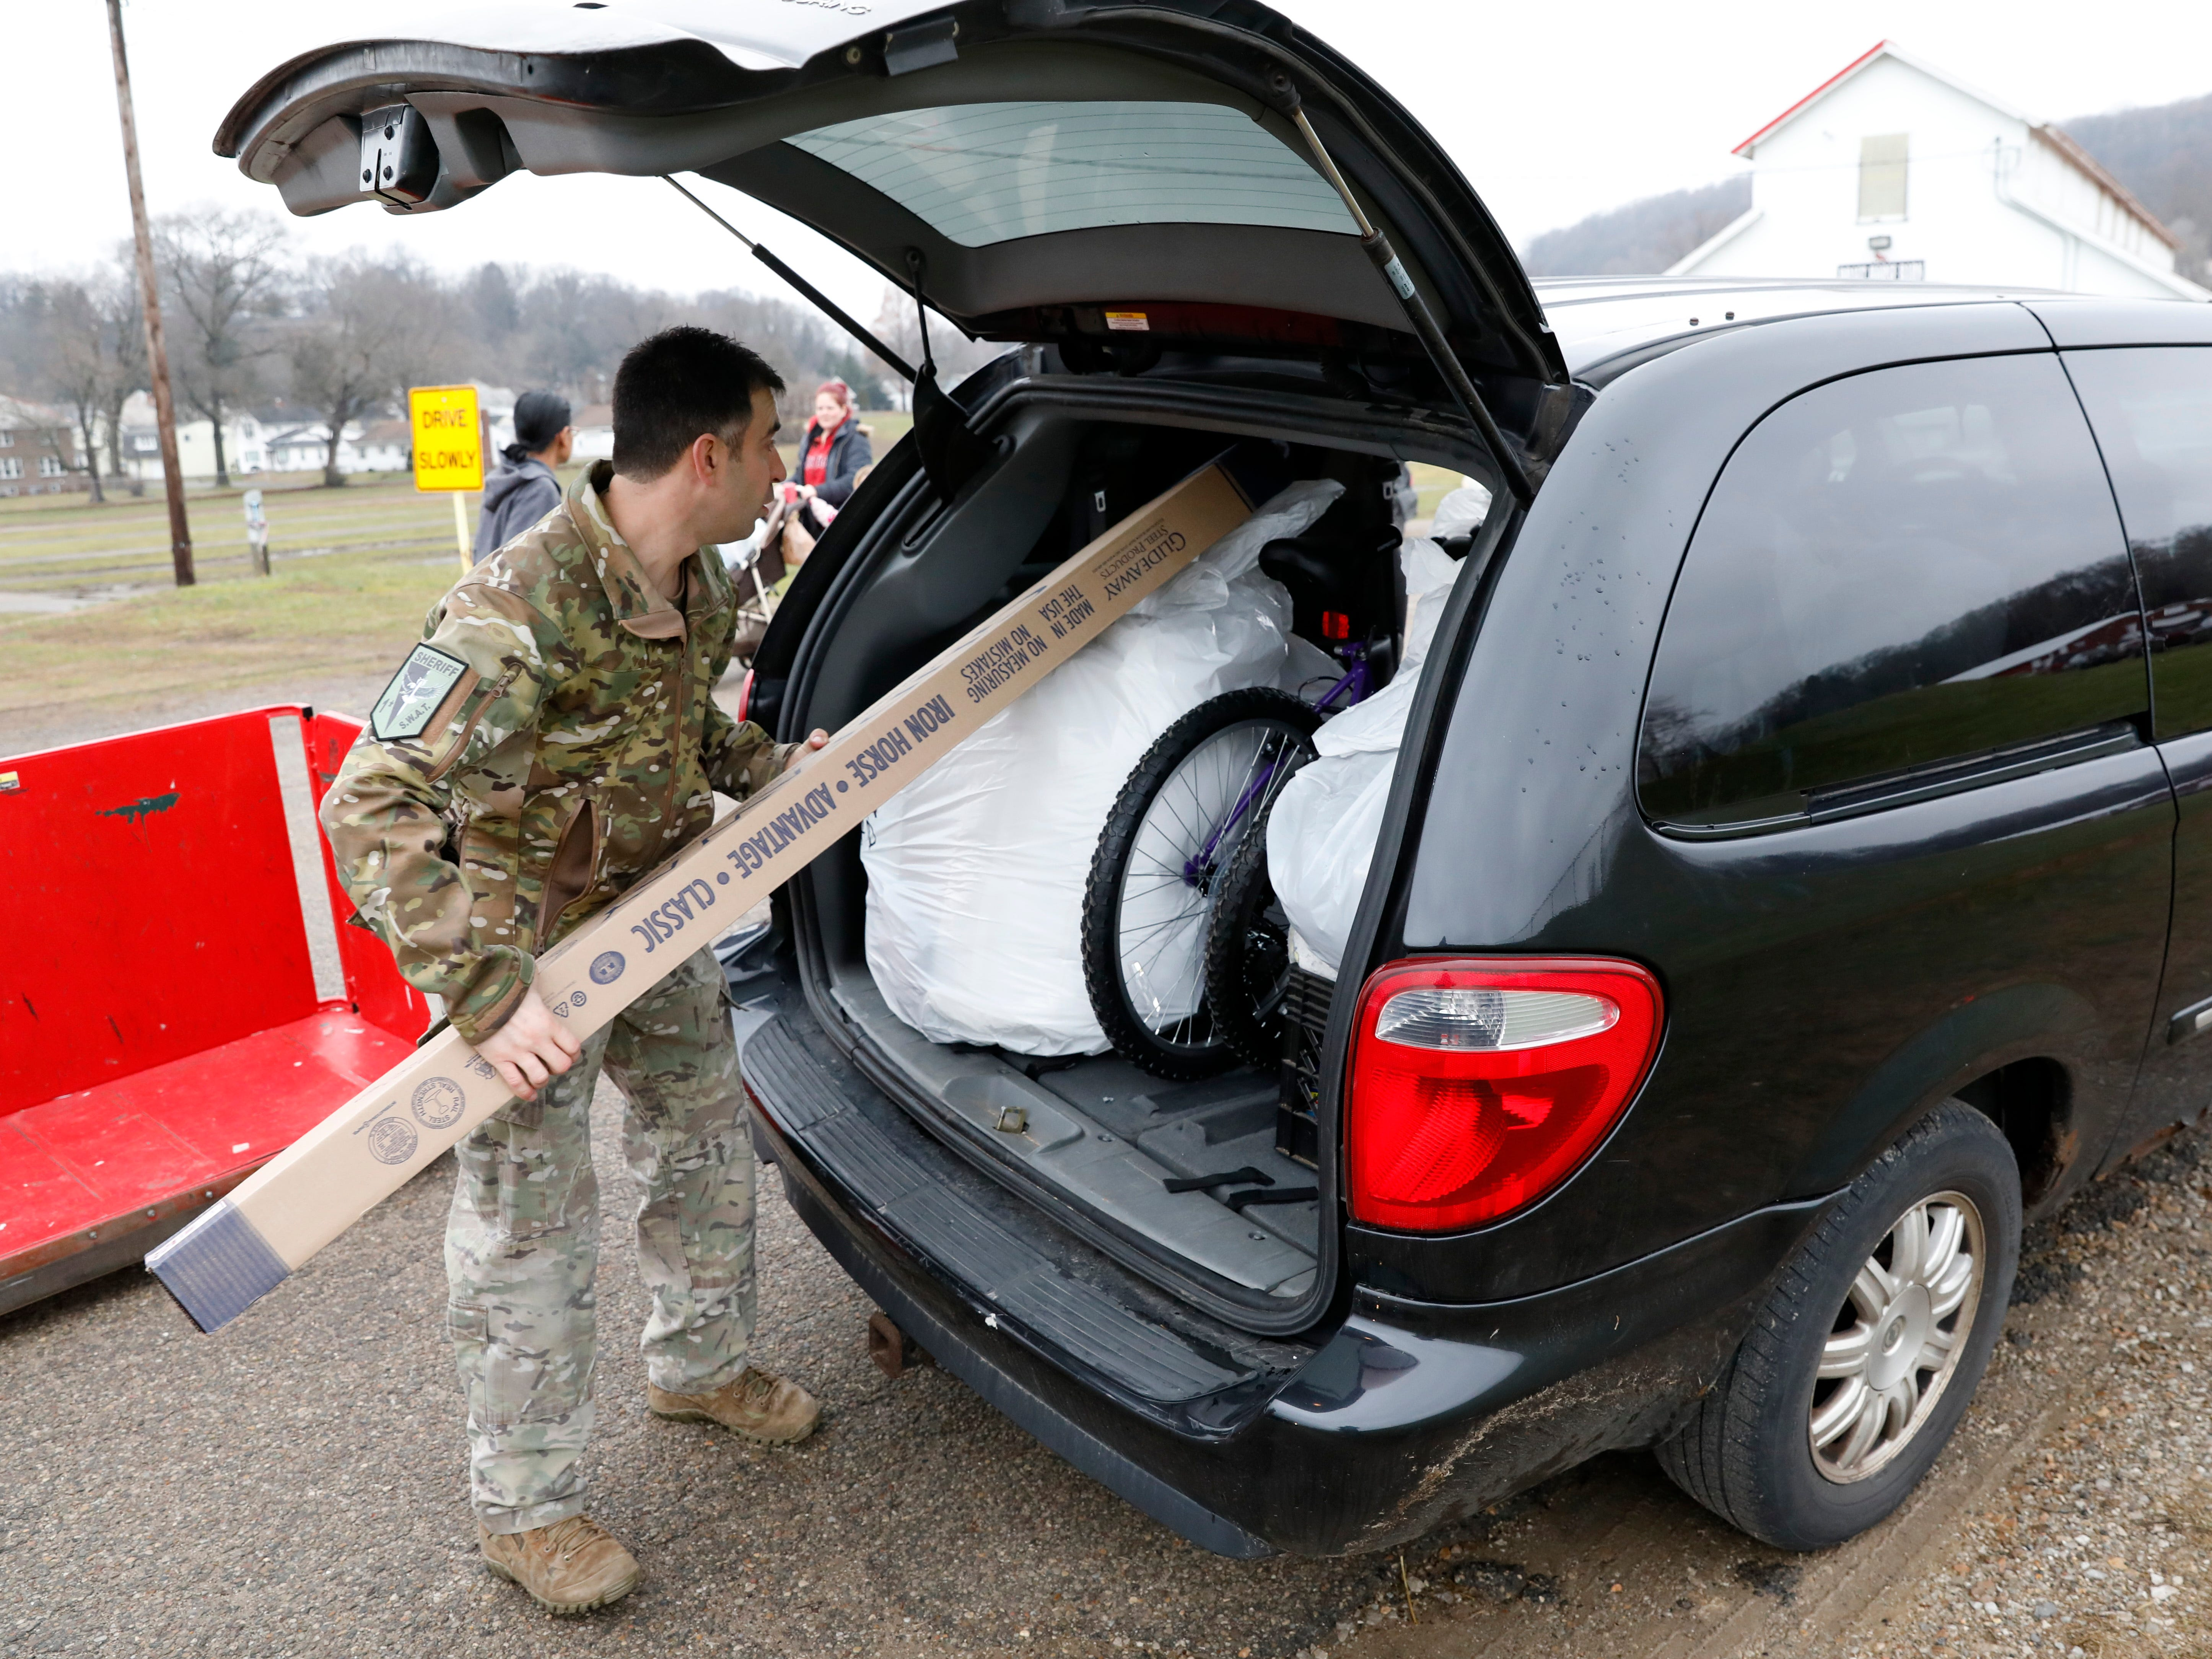 Fairfield County Sheriff's Office Sgt. Jesse Hendershot slides a bed frame into the back of a van Friday morning, Dec. 21, 2018, at Fairfield County Fairgrounds. Hendershot and other members of the sheriffs office S.W.A.T. team helped carry presents to recipient's vehicles during the Salvation Army of Fairfield County's Christmas Cheer gift distribution. More than 800 children received presents, including beds and bicycles, through the program.